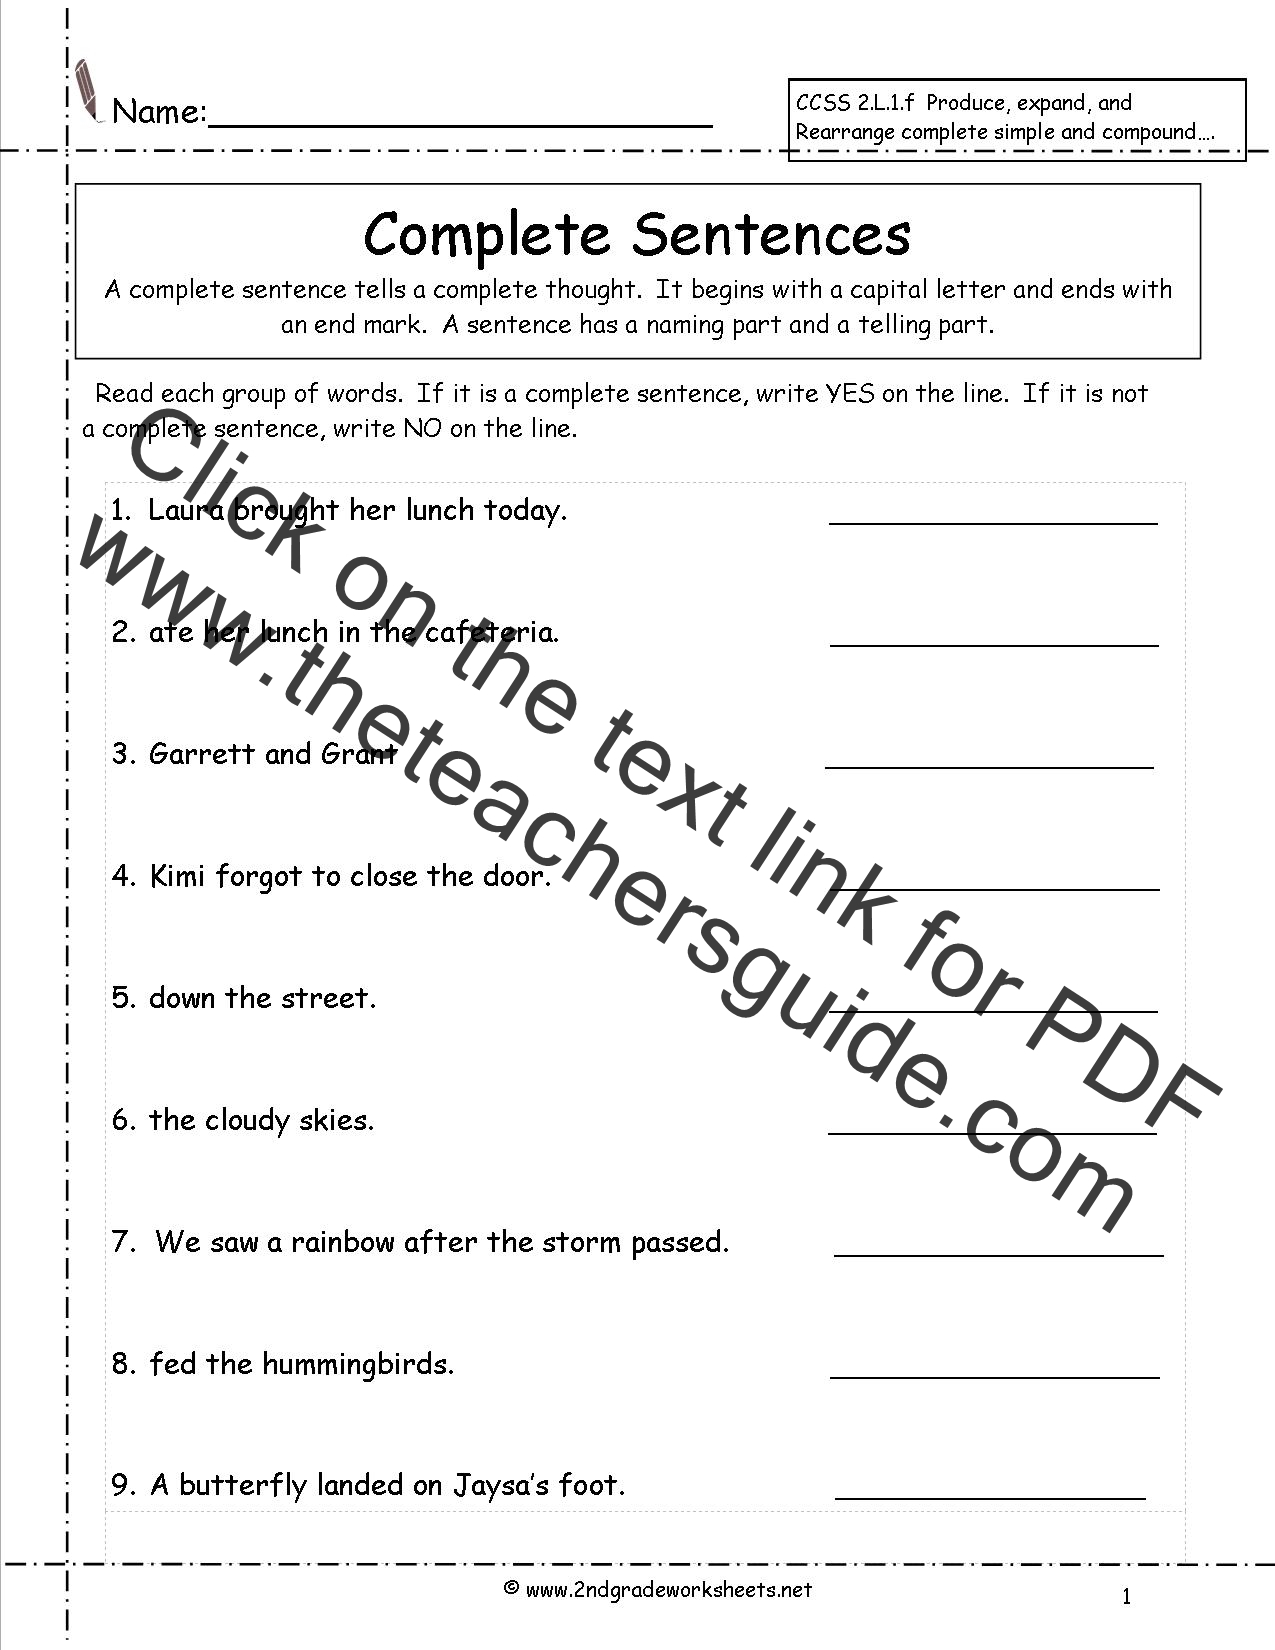 Worksheet Sentence Corrections Worksheets second grade sentences worksheets ccss 2 l 1 f complete worksheets